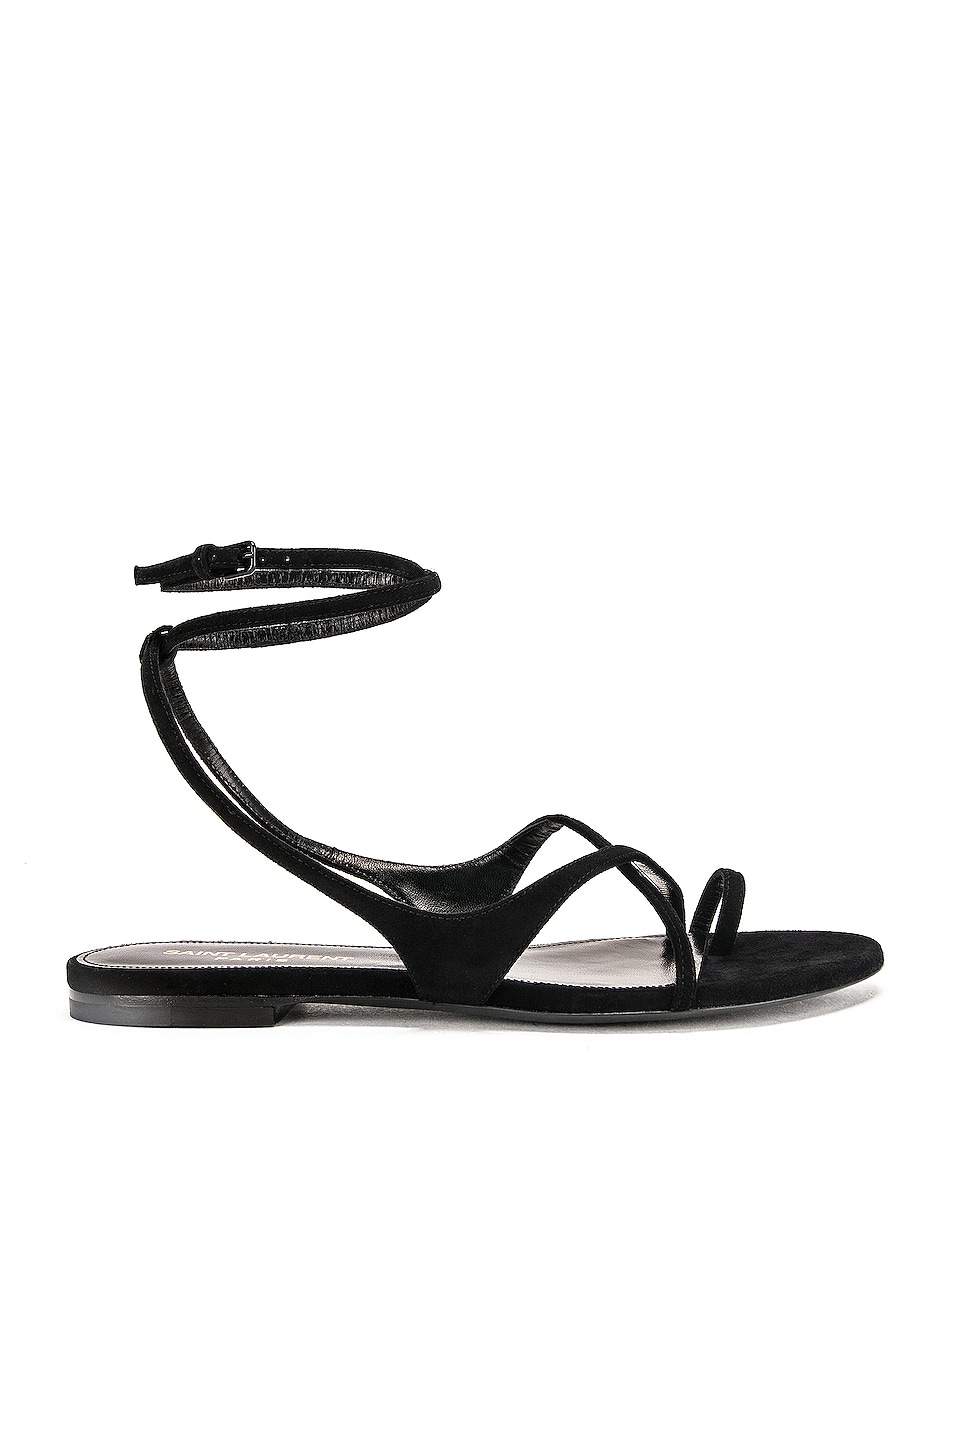 Image 1 of Saint Laurent Gia Sandal in Black